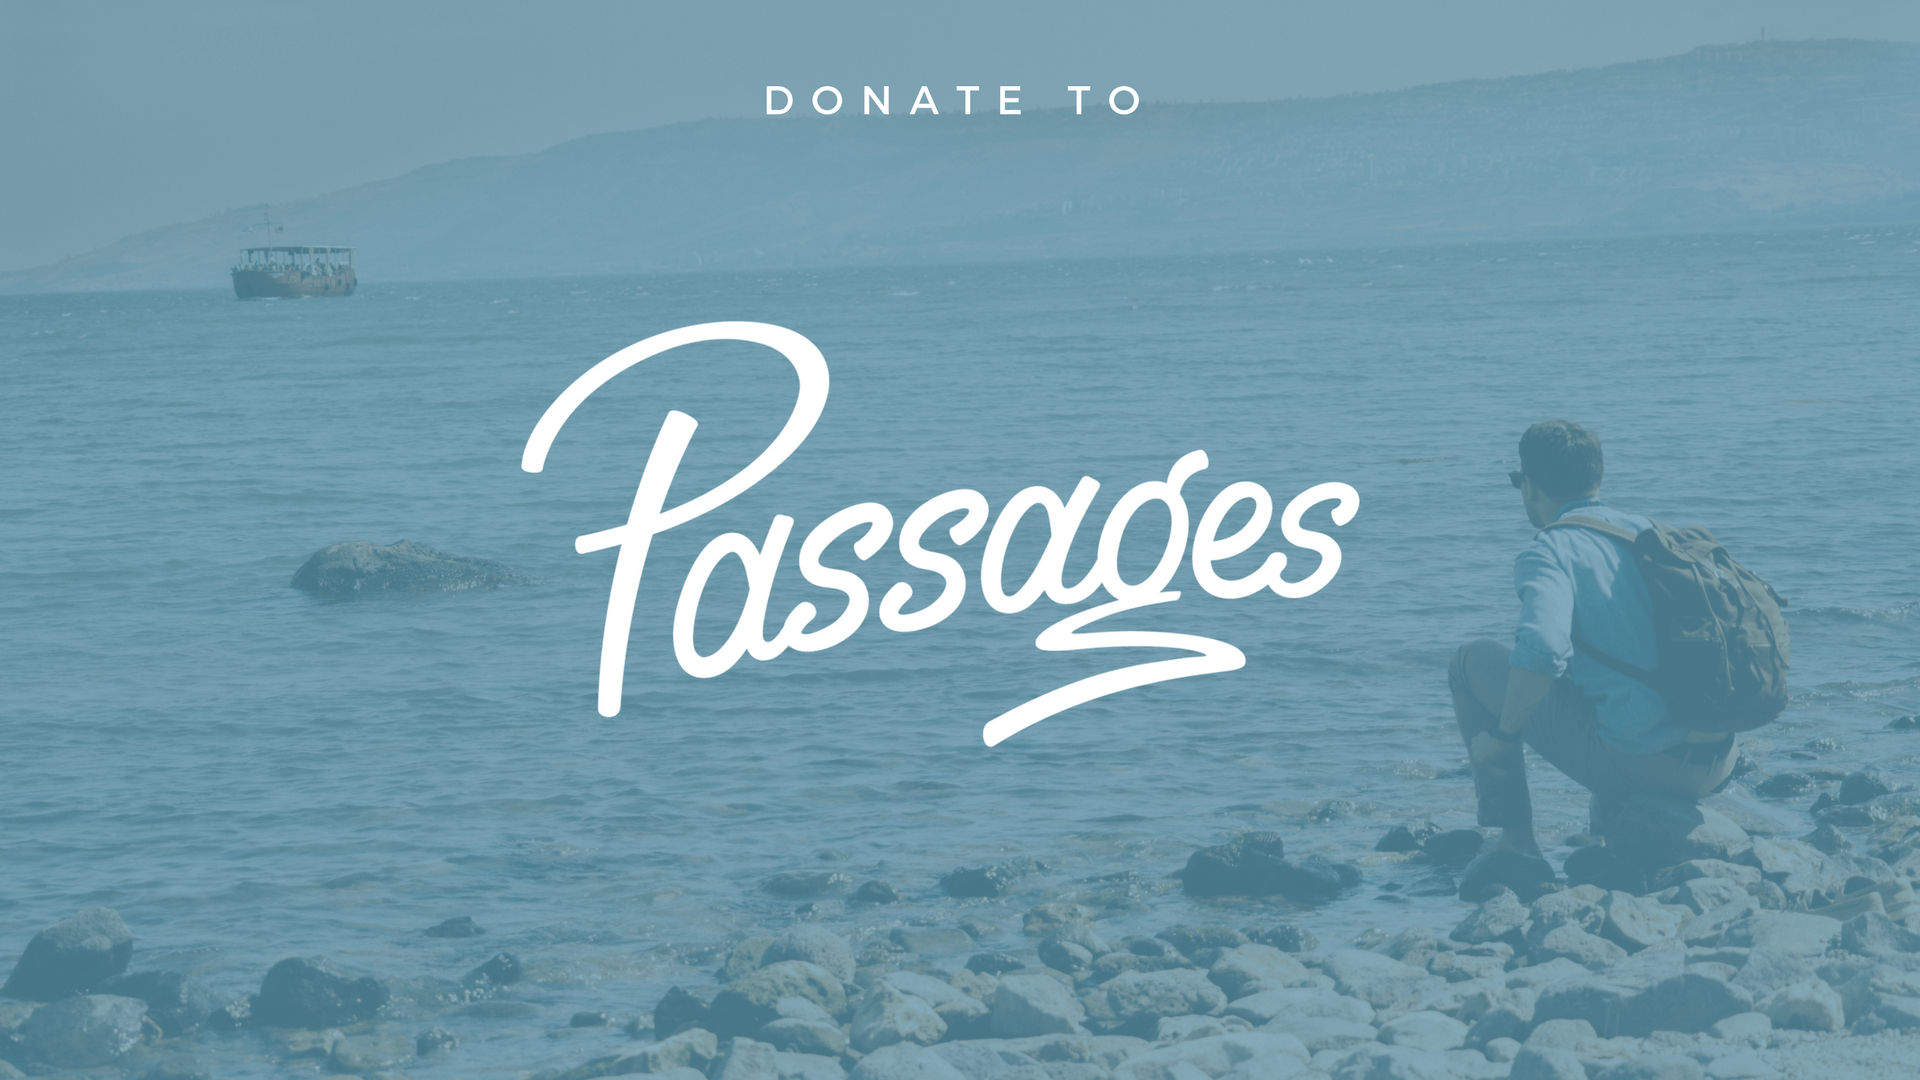 Donate to Passages